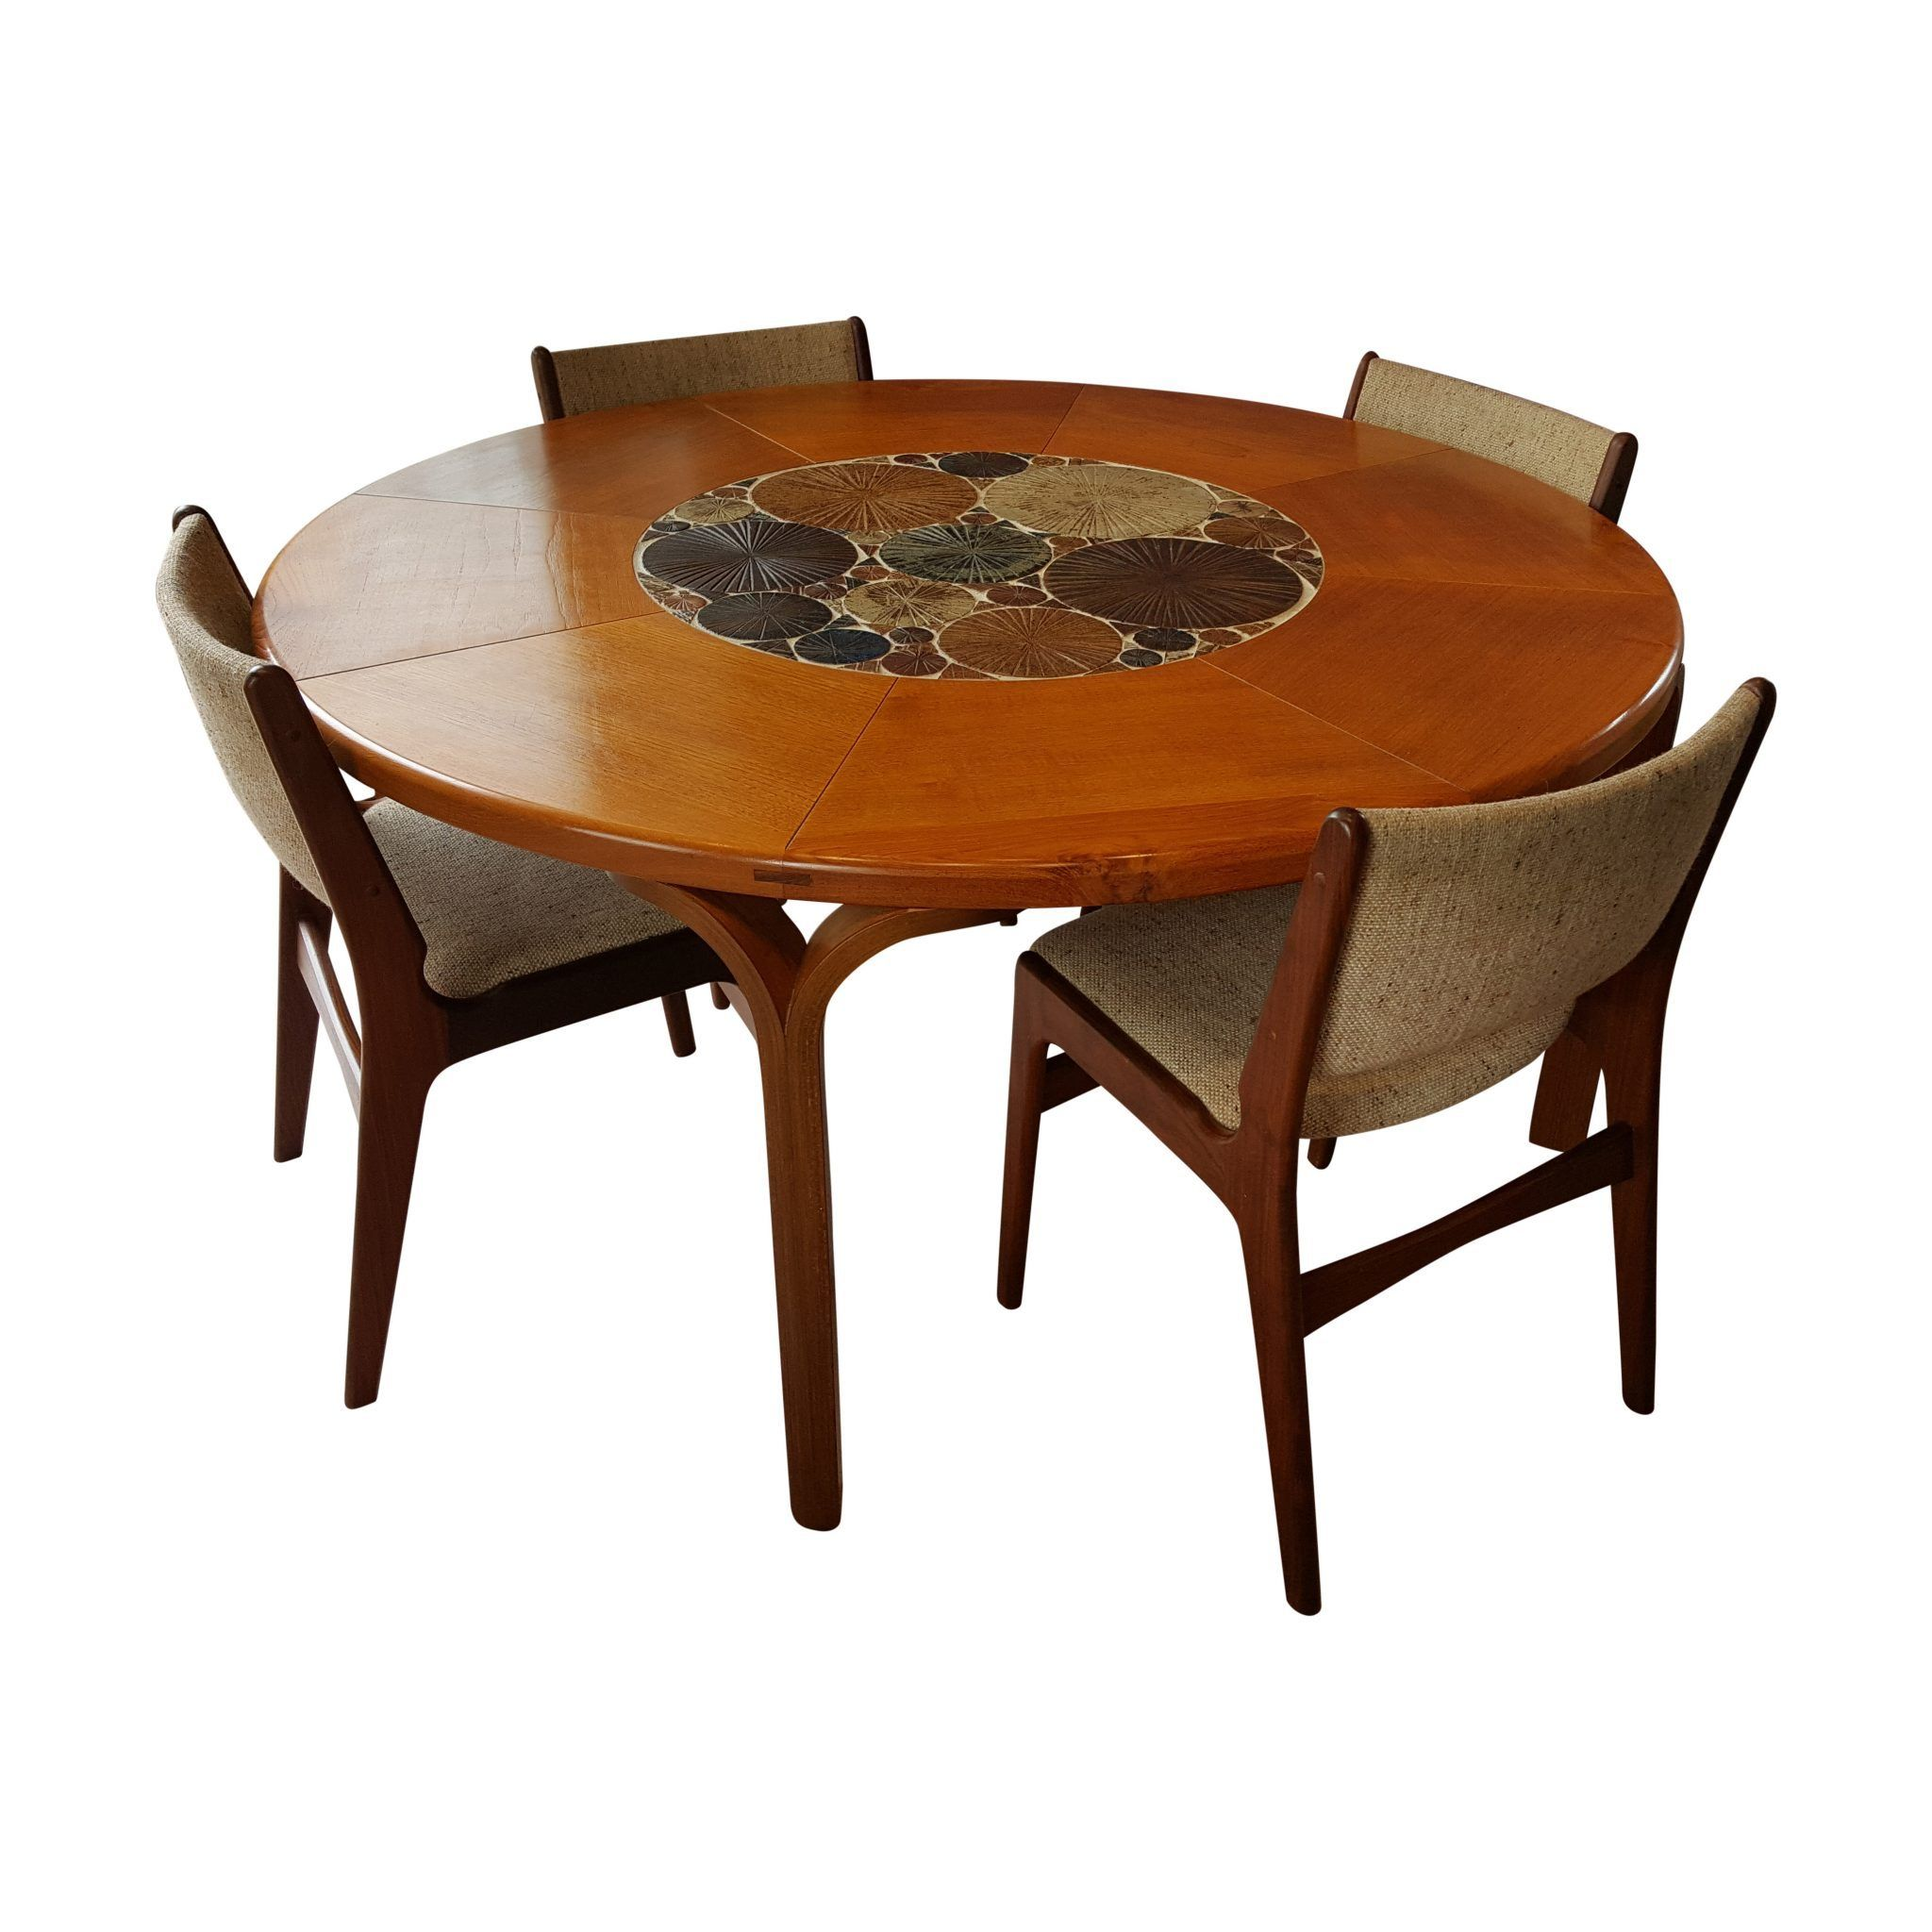 Vinterior Offers Britains Greatest Selection Of Vintage Mid Century Antique And Design Furniture Home Decor